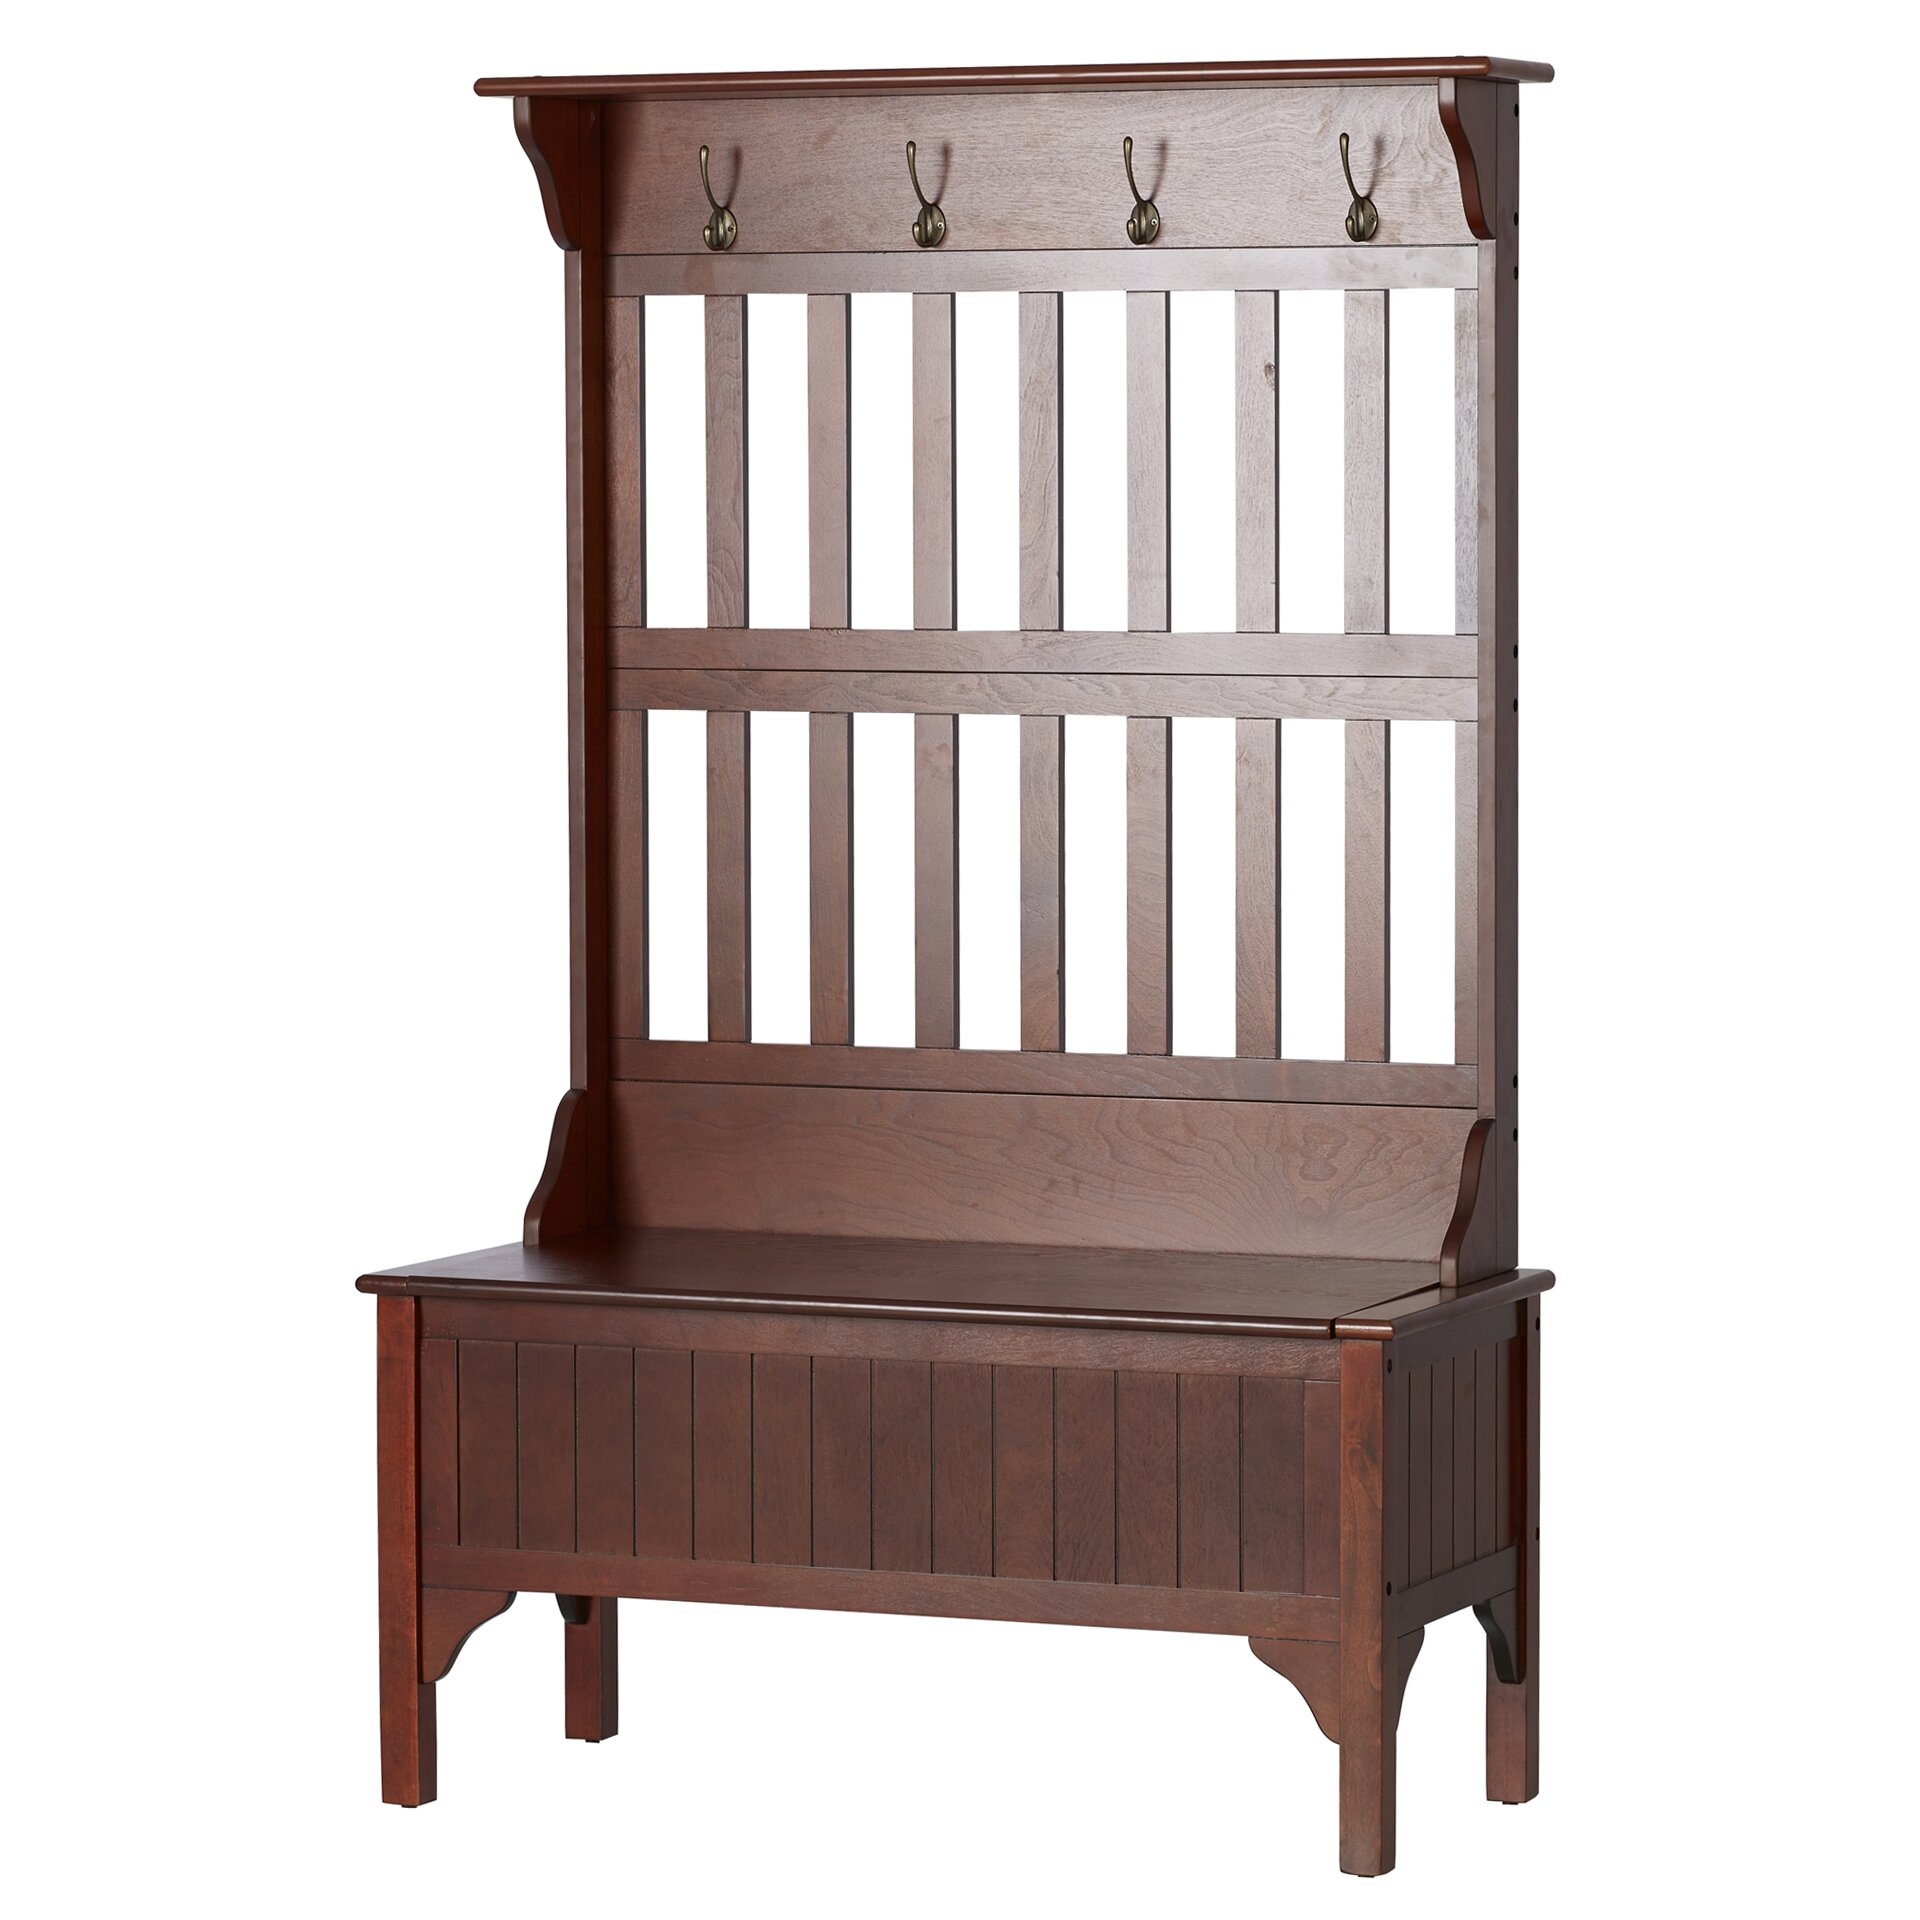 Nun Talk Nw 0288 0 as well Bliss 60 Single Wall Mount Modern Bathroom Vanity Set BSL60S KUBB1028 besides Princess Tutu Number 1 Applique together with Rounding 100000 us 001 furthermore Frigidaire 1 5 Cu  Ft  Over The Range Microwave Oven FRI1577. on order thanksgiving cards